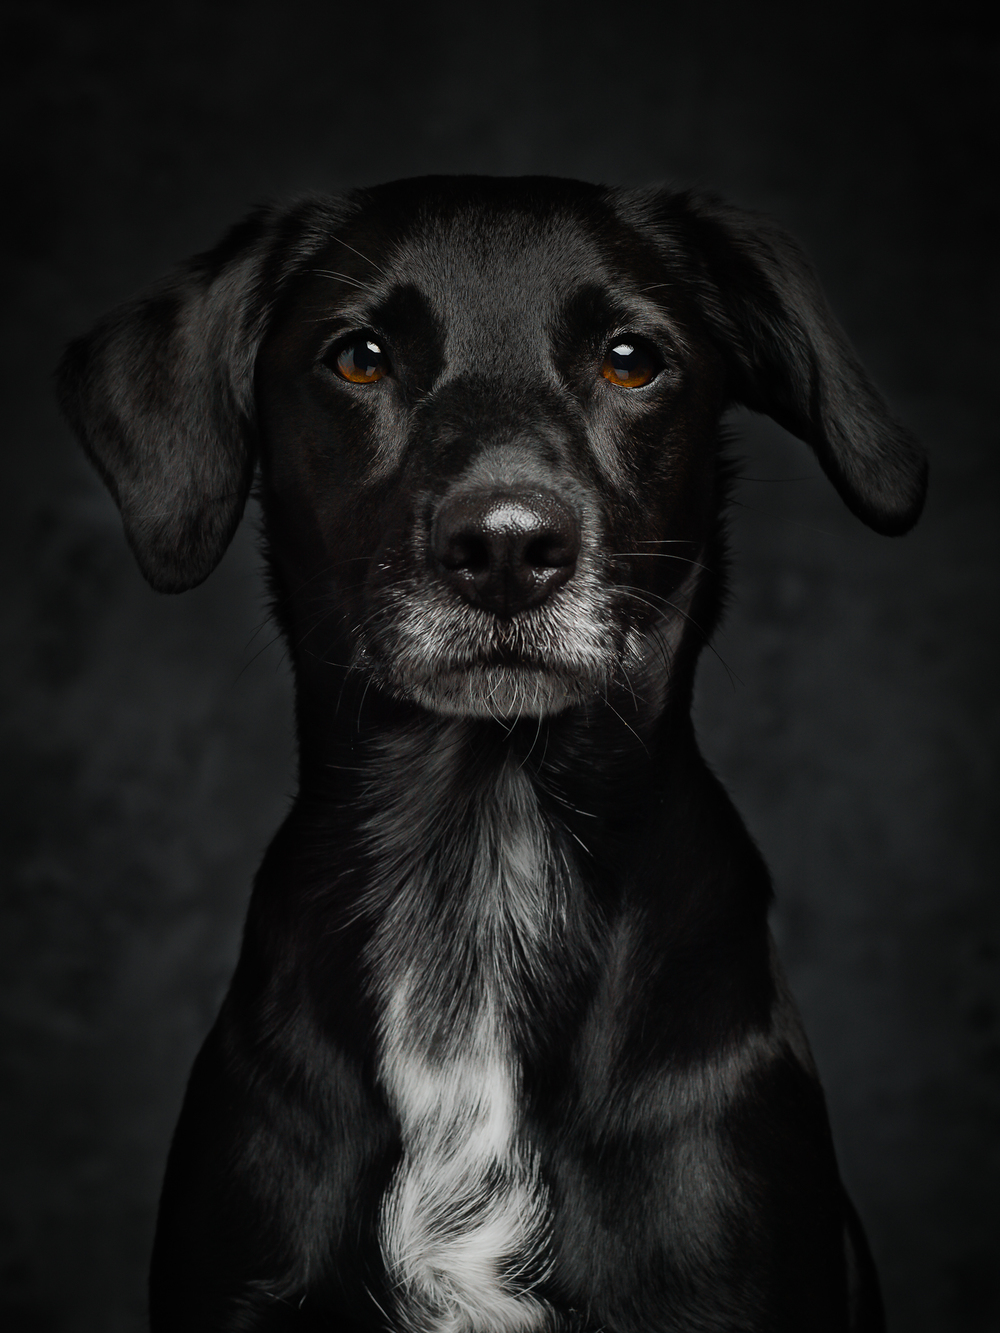 klaus-dyba-dog-photography